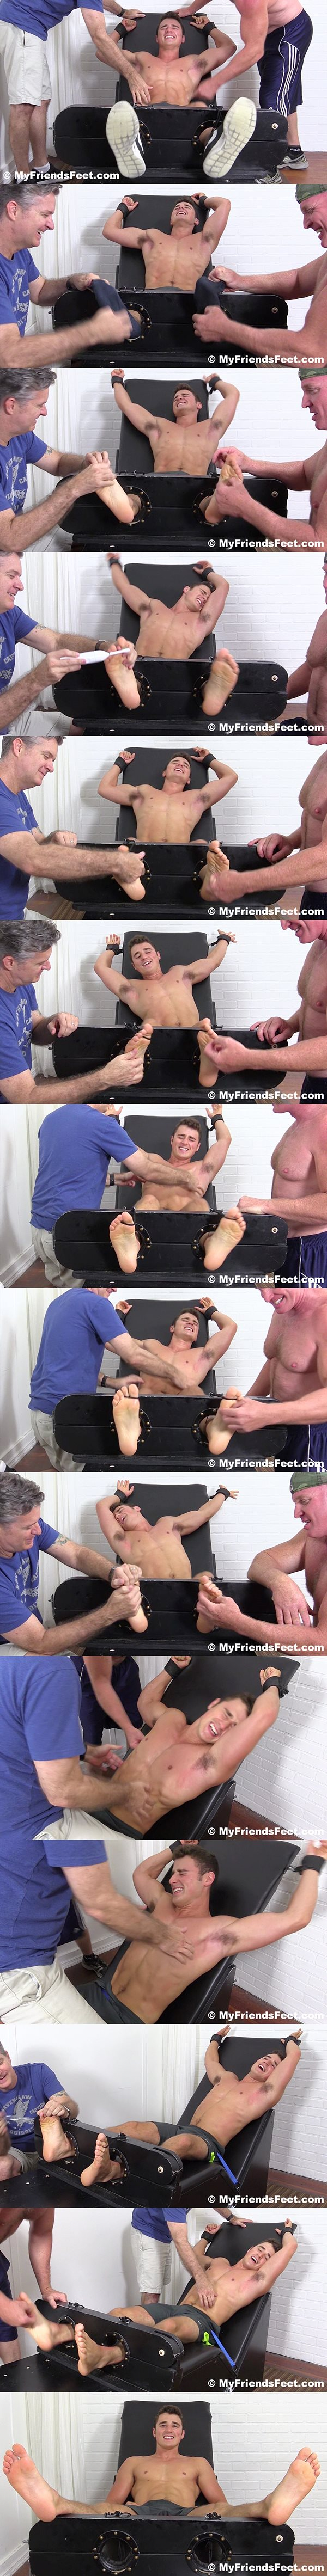 Myfriendsfeet - Matthew Tickled 02